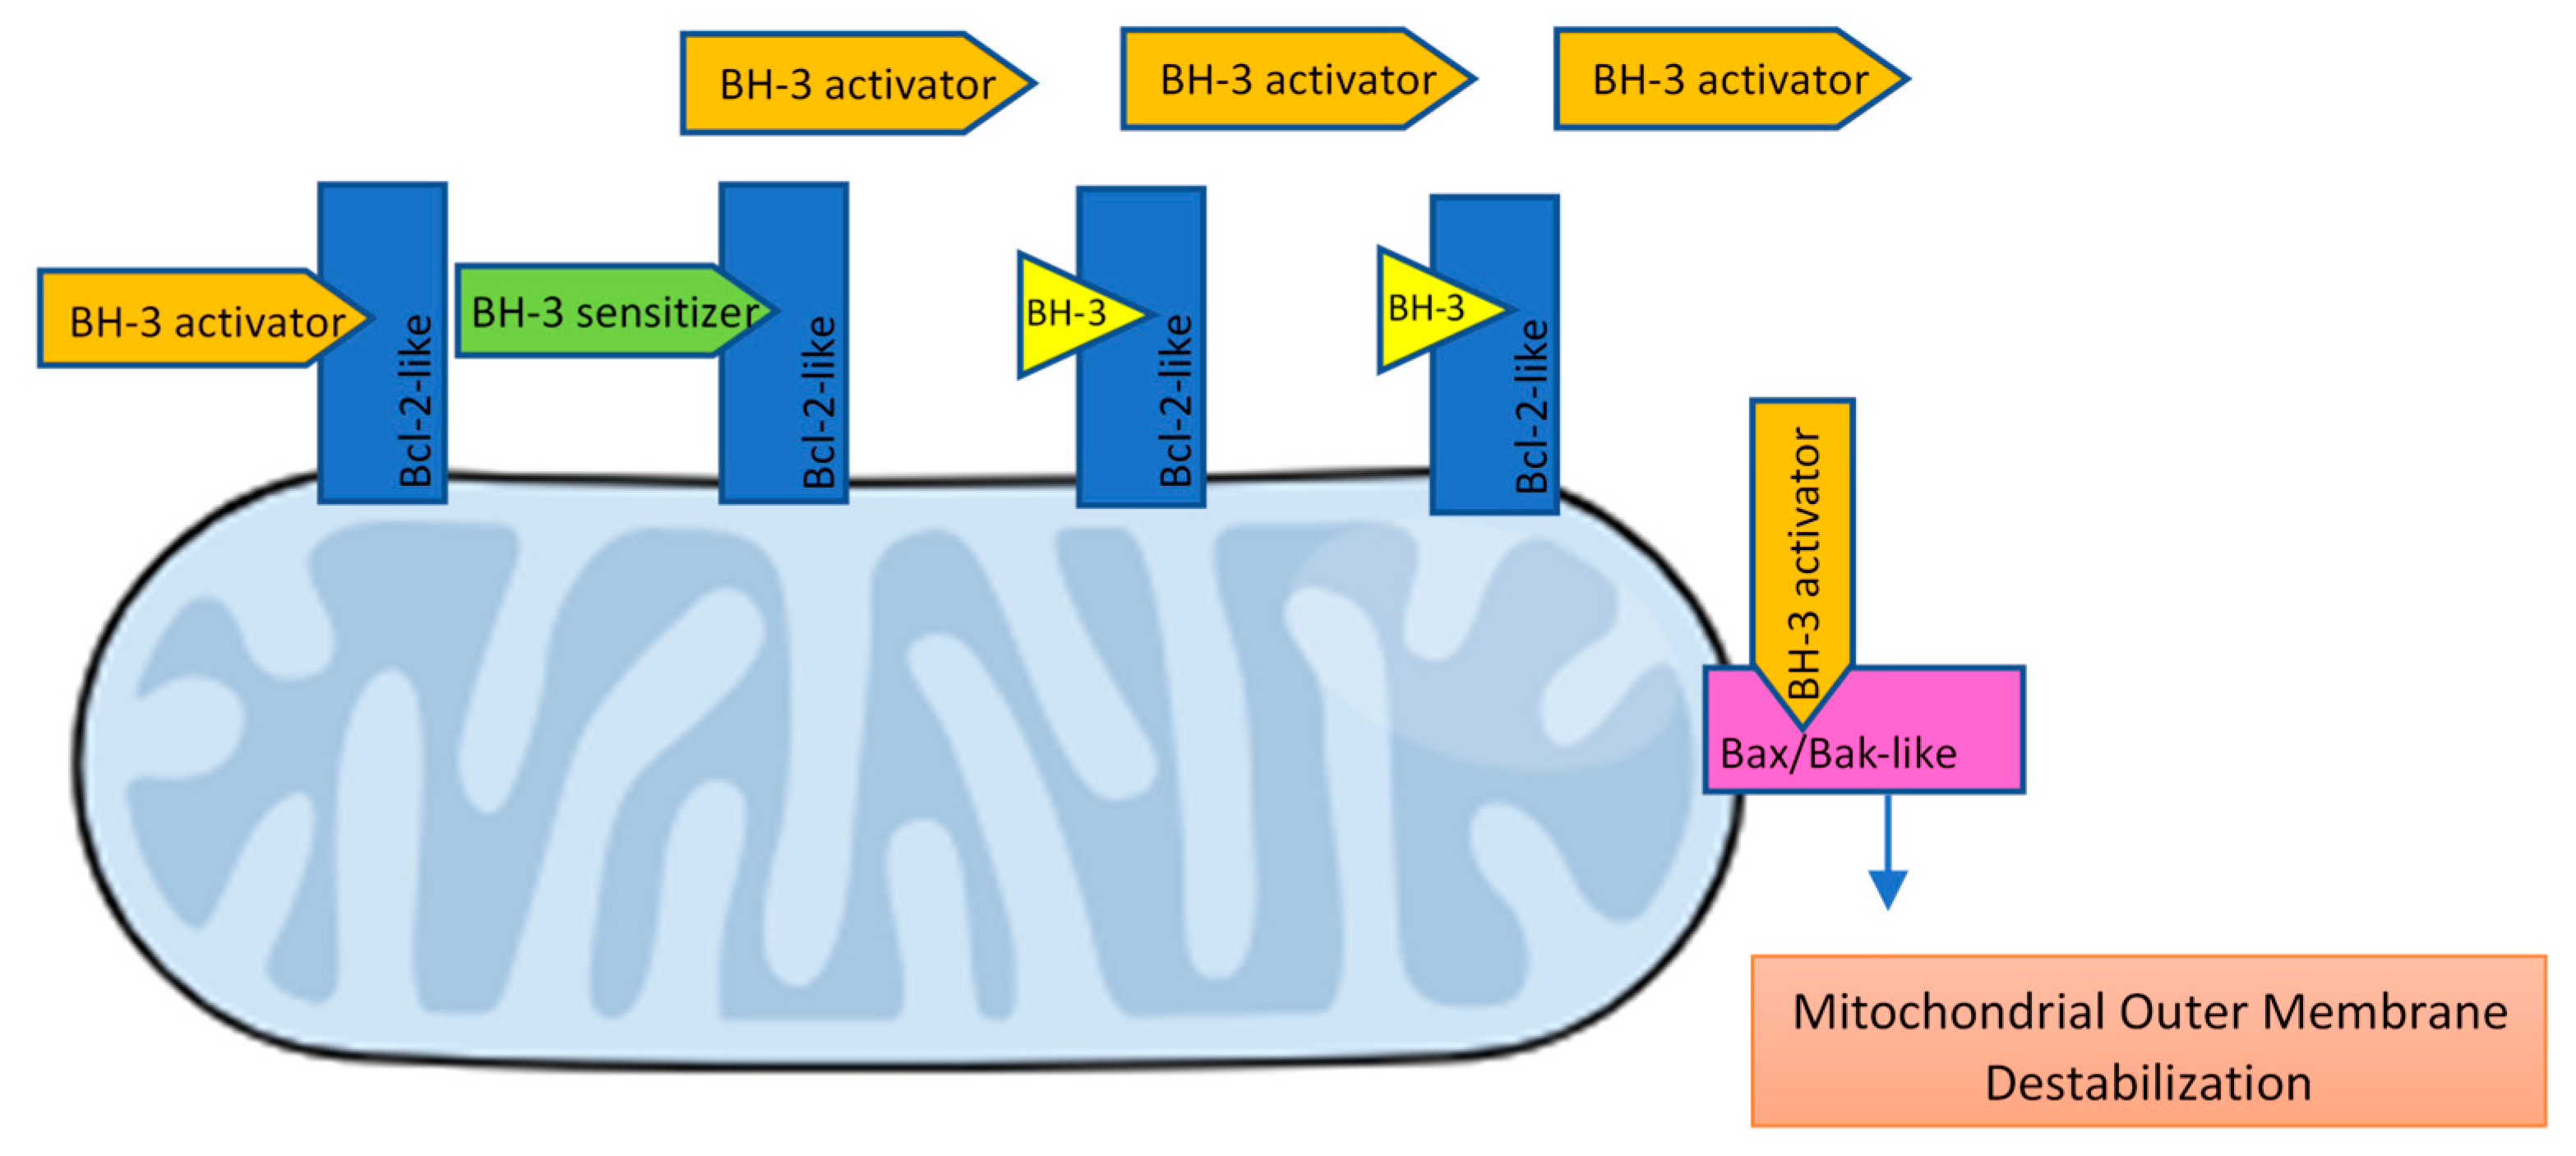 IJMS | Free Full-Text | Bcl-2 Inhibition to Overcome Resistance to